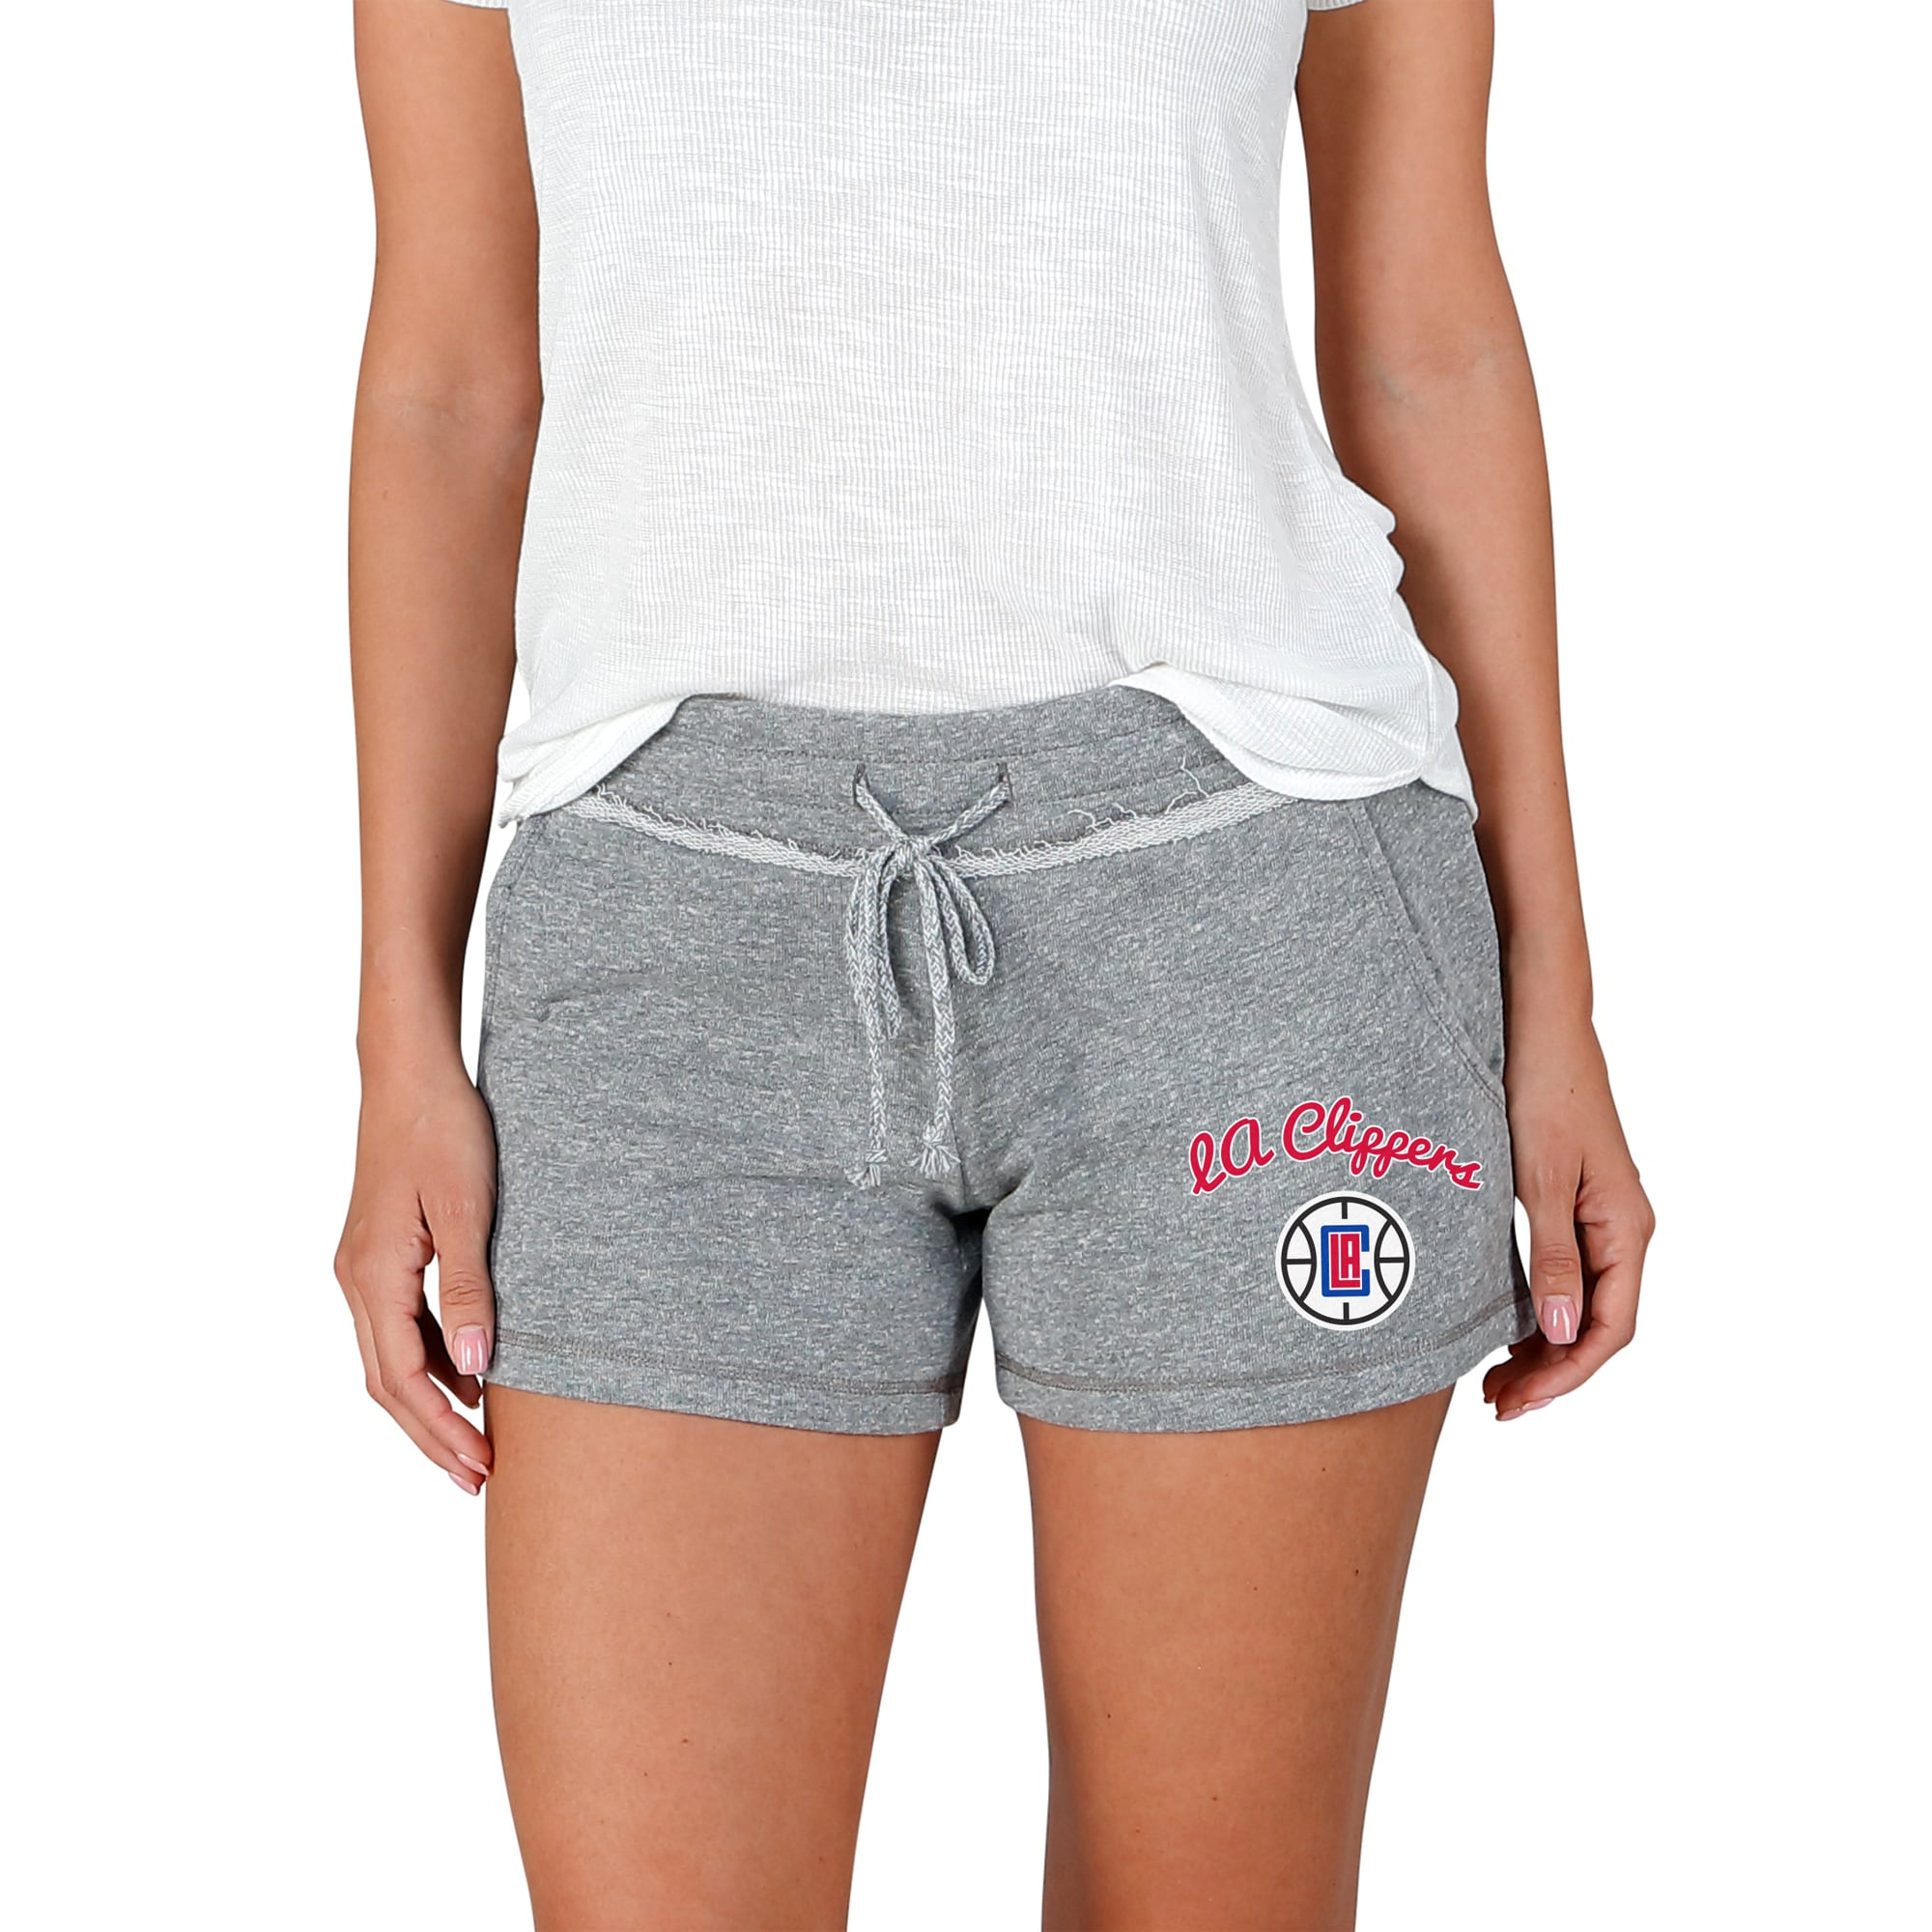 LA Clippers Concepts Sport Women's Mainstream Terry Shorts - Gray